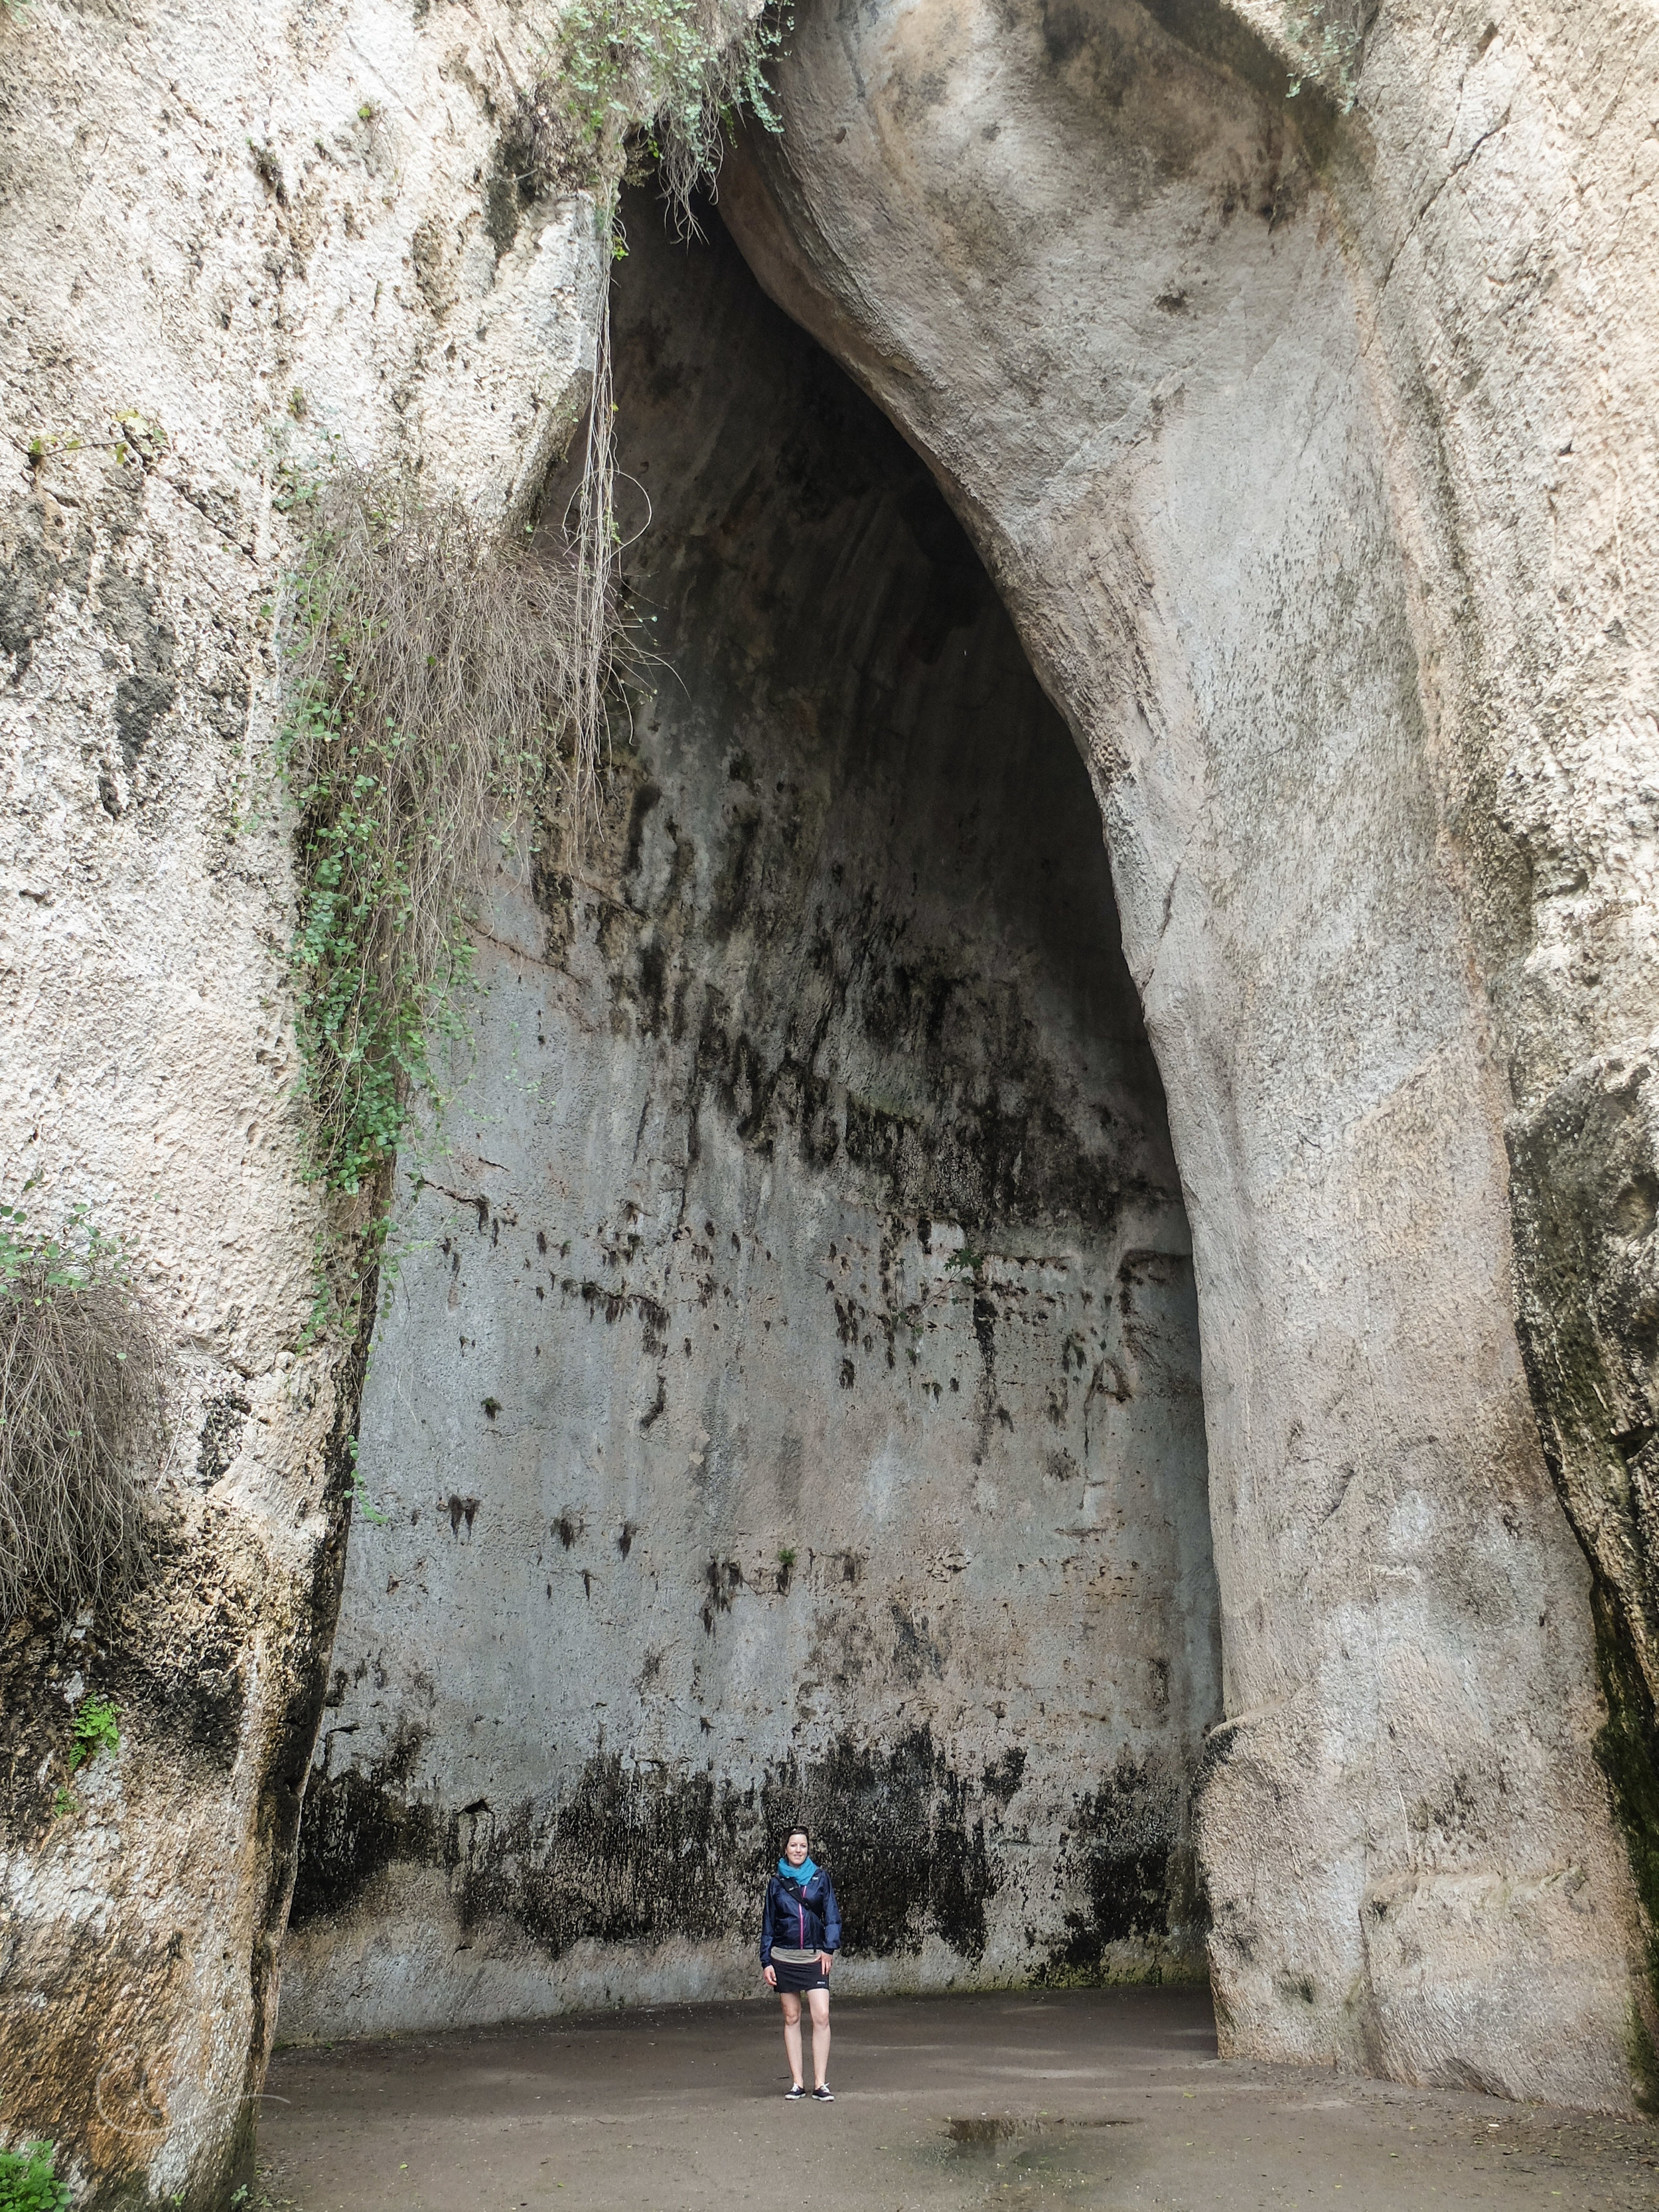 The Ear of Dionysius. Legend goes Dionysius used the cave as a prison and was able to eavesdrop on his prisoners by means of the perfect acoustics in the cave.